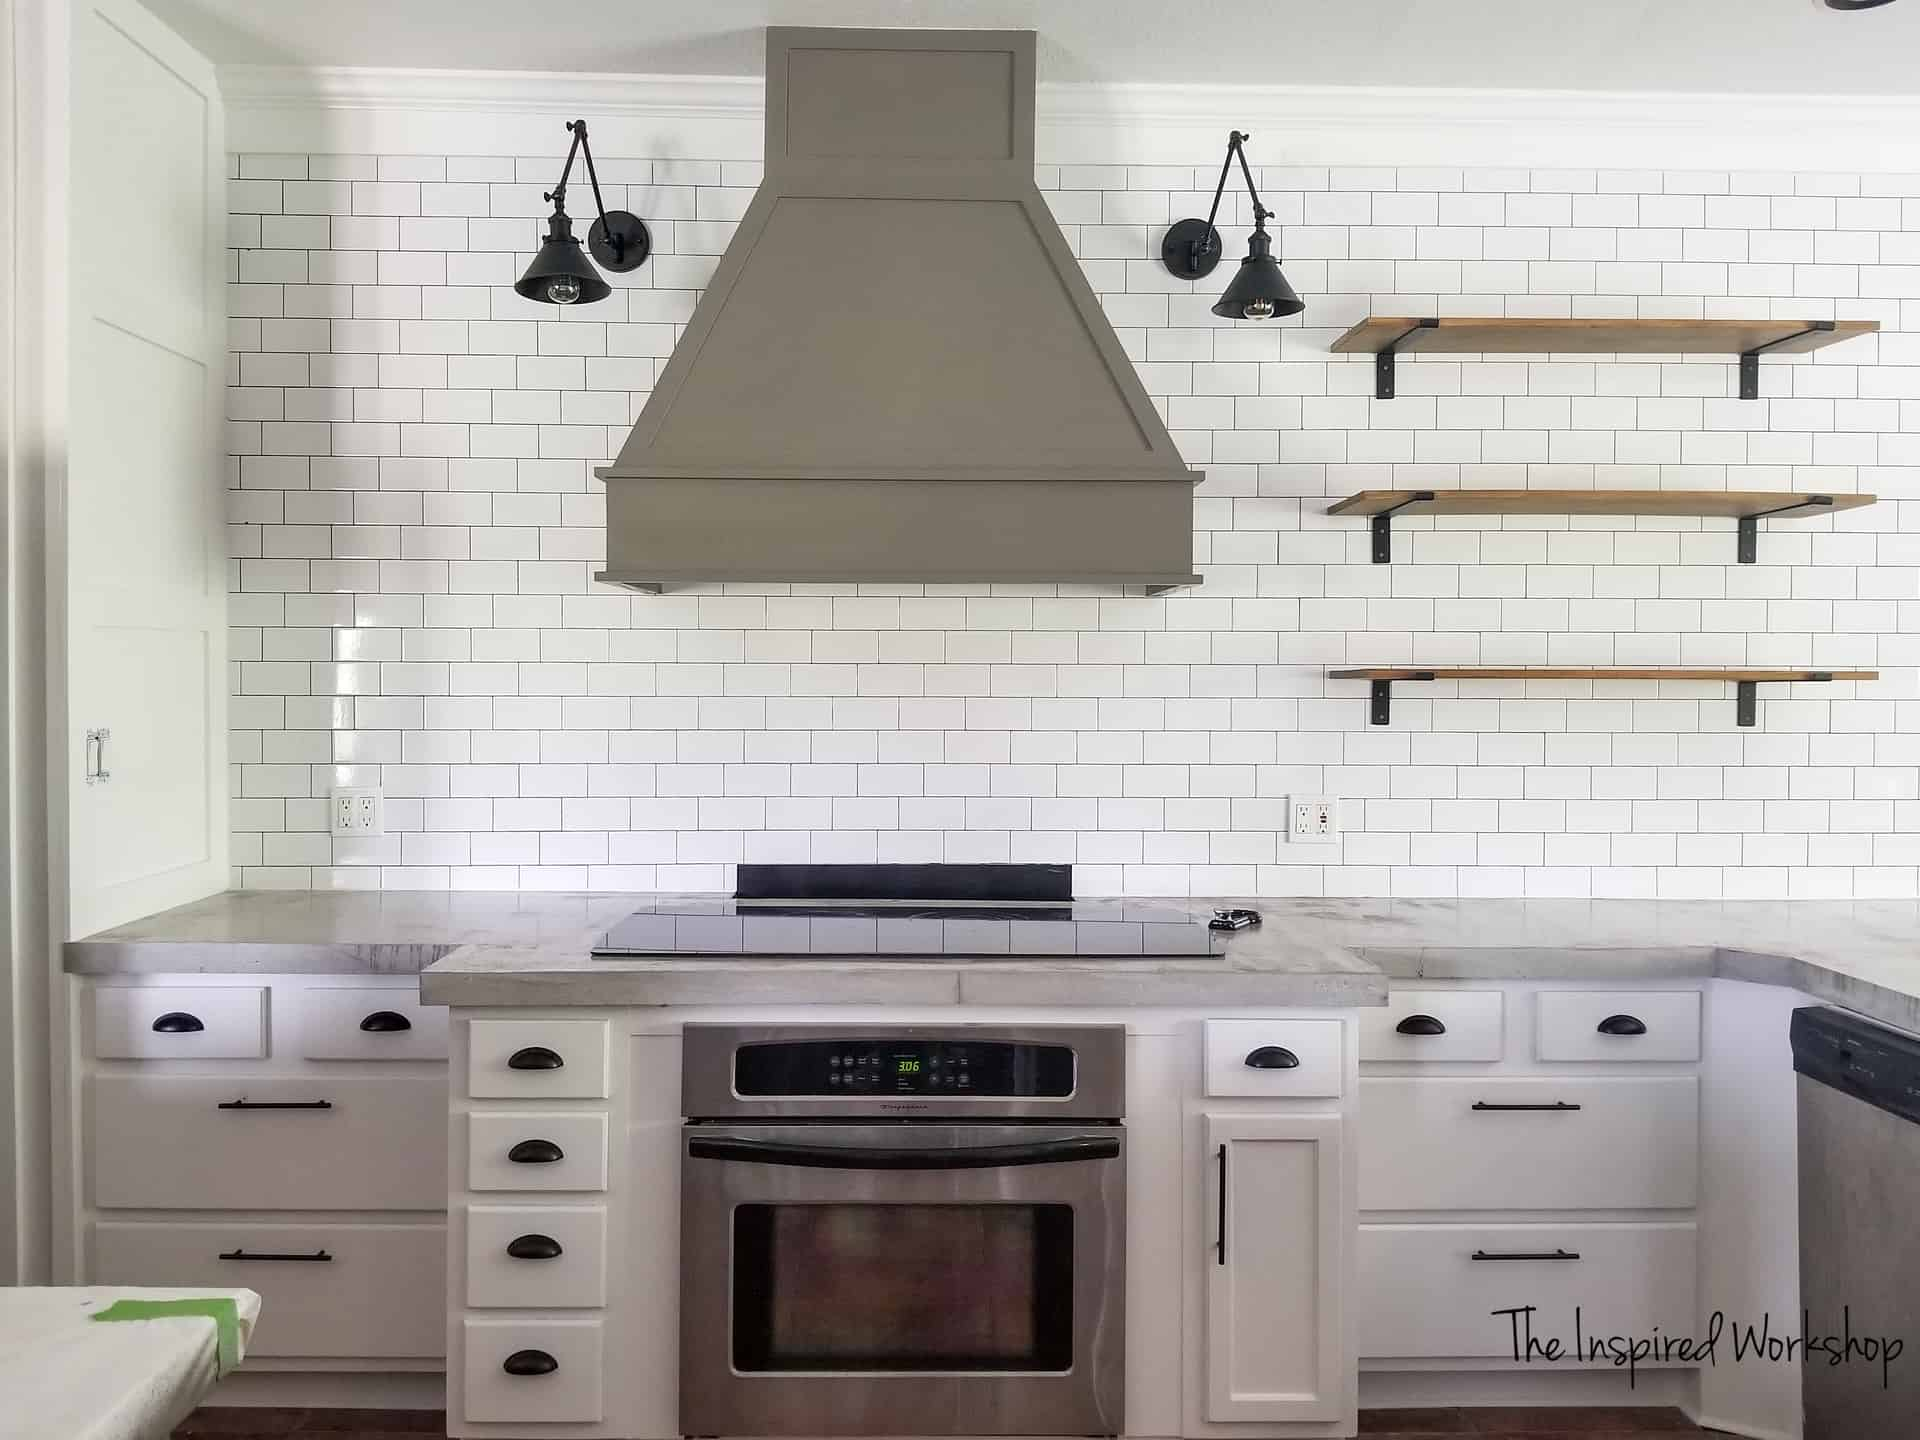 Merveilleux Kitchen Renovation Ideas   MOdern Farmhouse Style With Subway Tile, Vent  Hood And White Cabinets